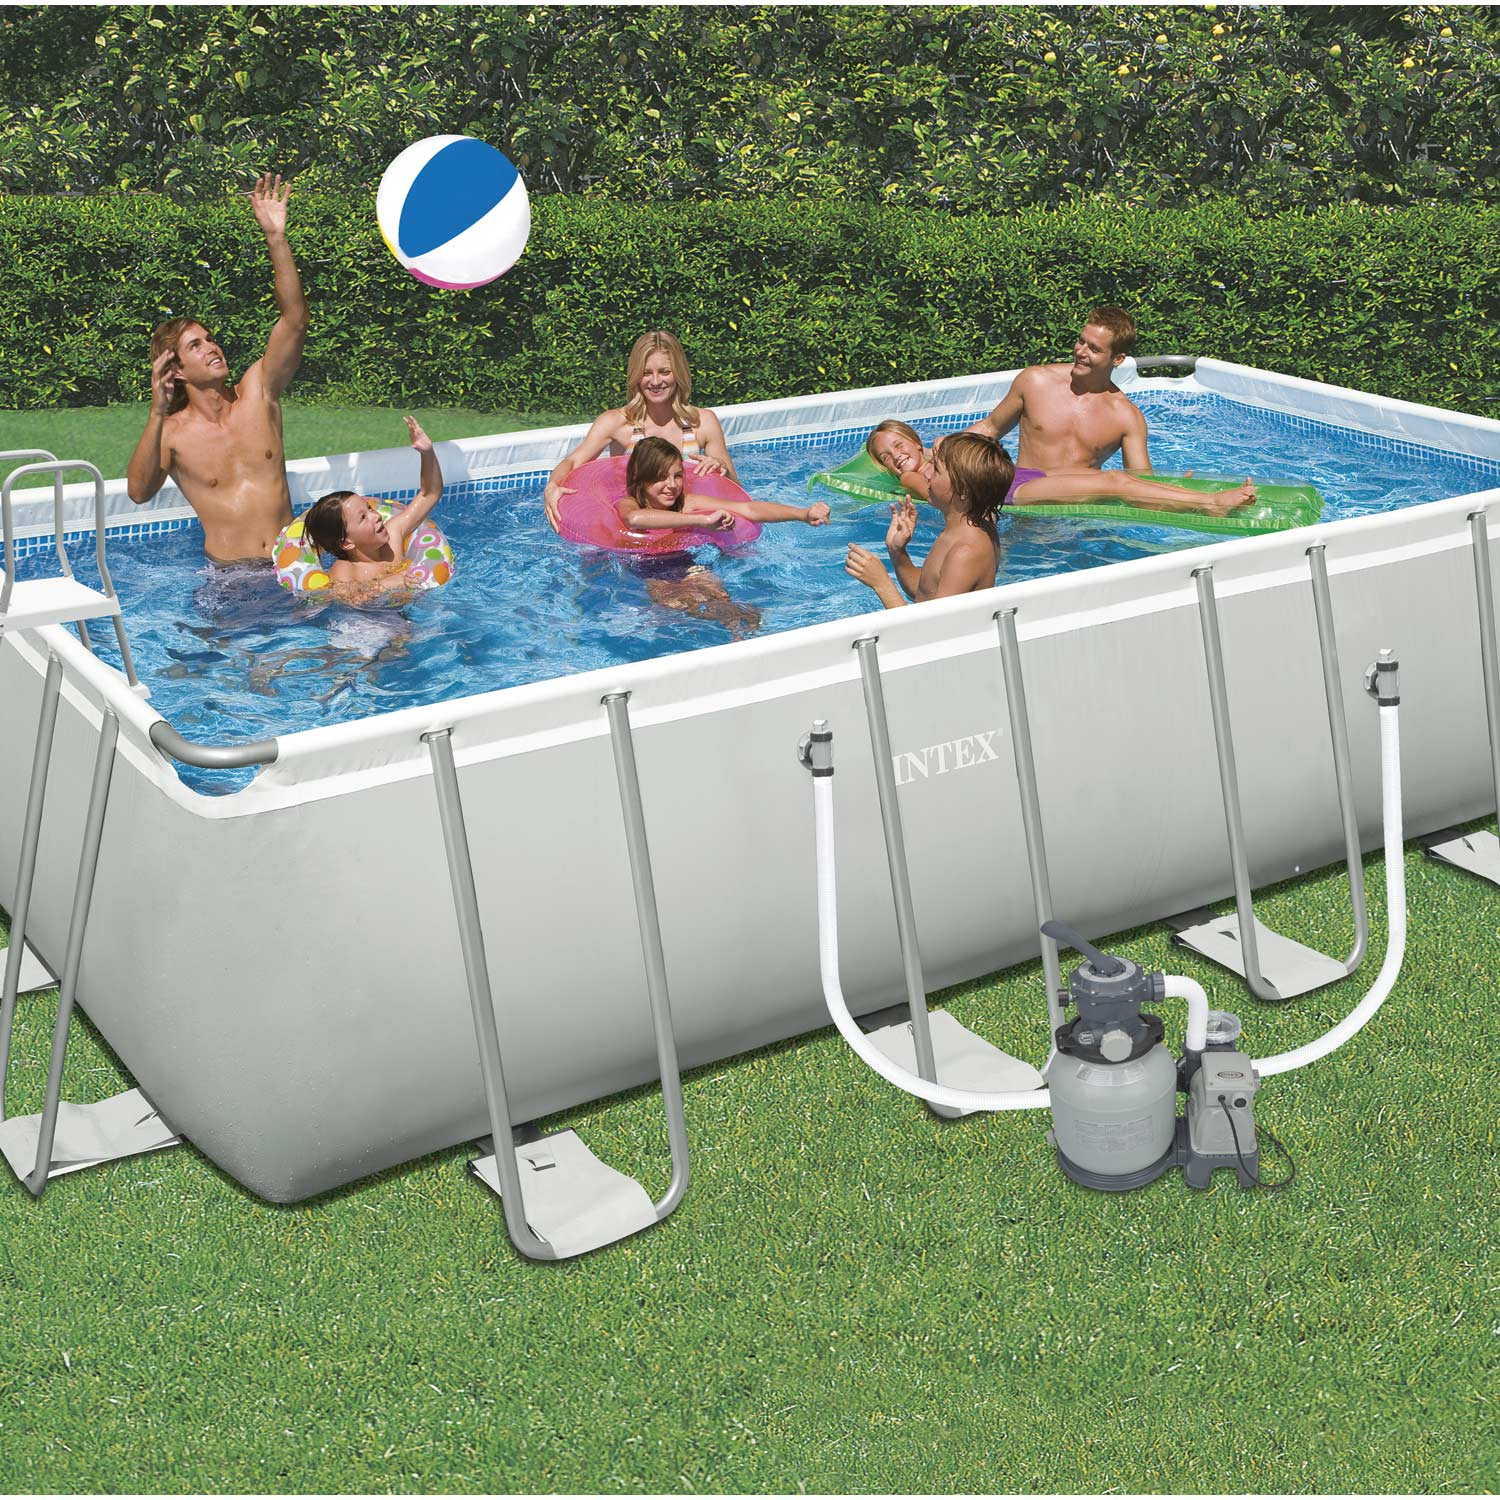 Piscine hors sol autoportante tubulaire ultra silver intex for Piscine hors sol enterrable